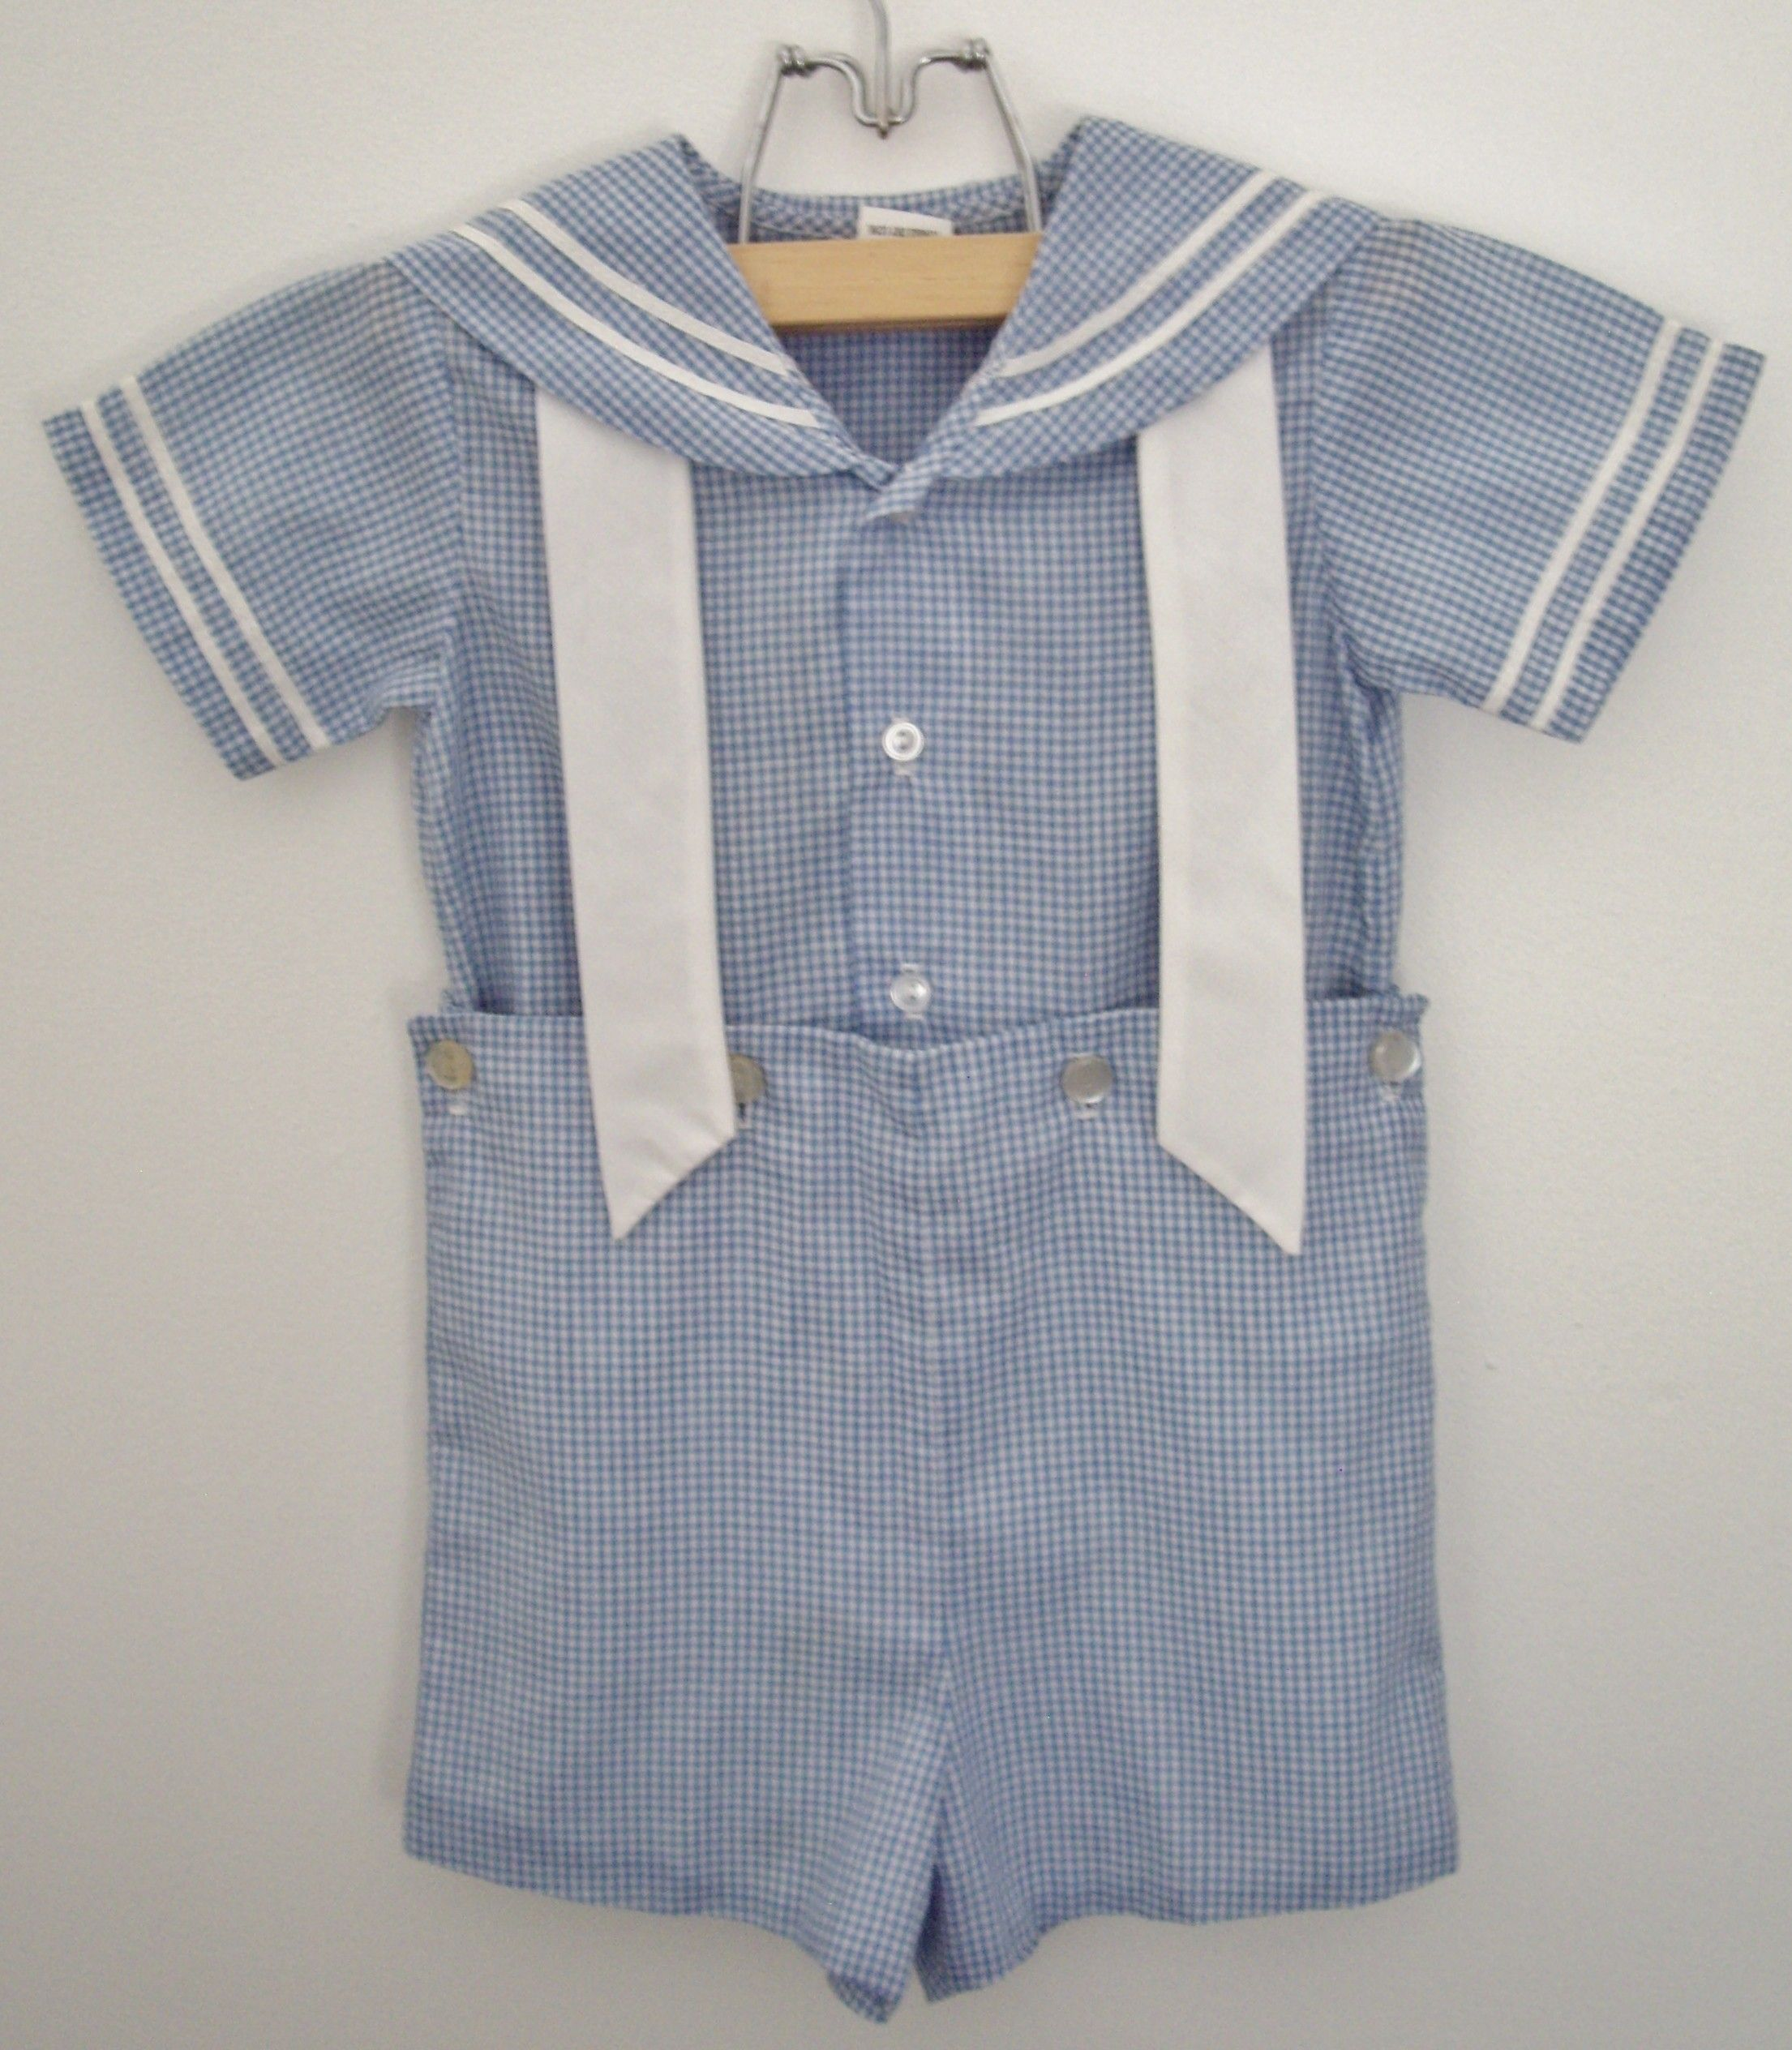 Vintage little boy s nautical sailor outfit circa 1950